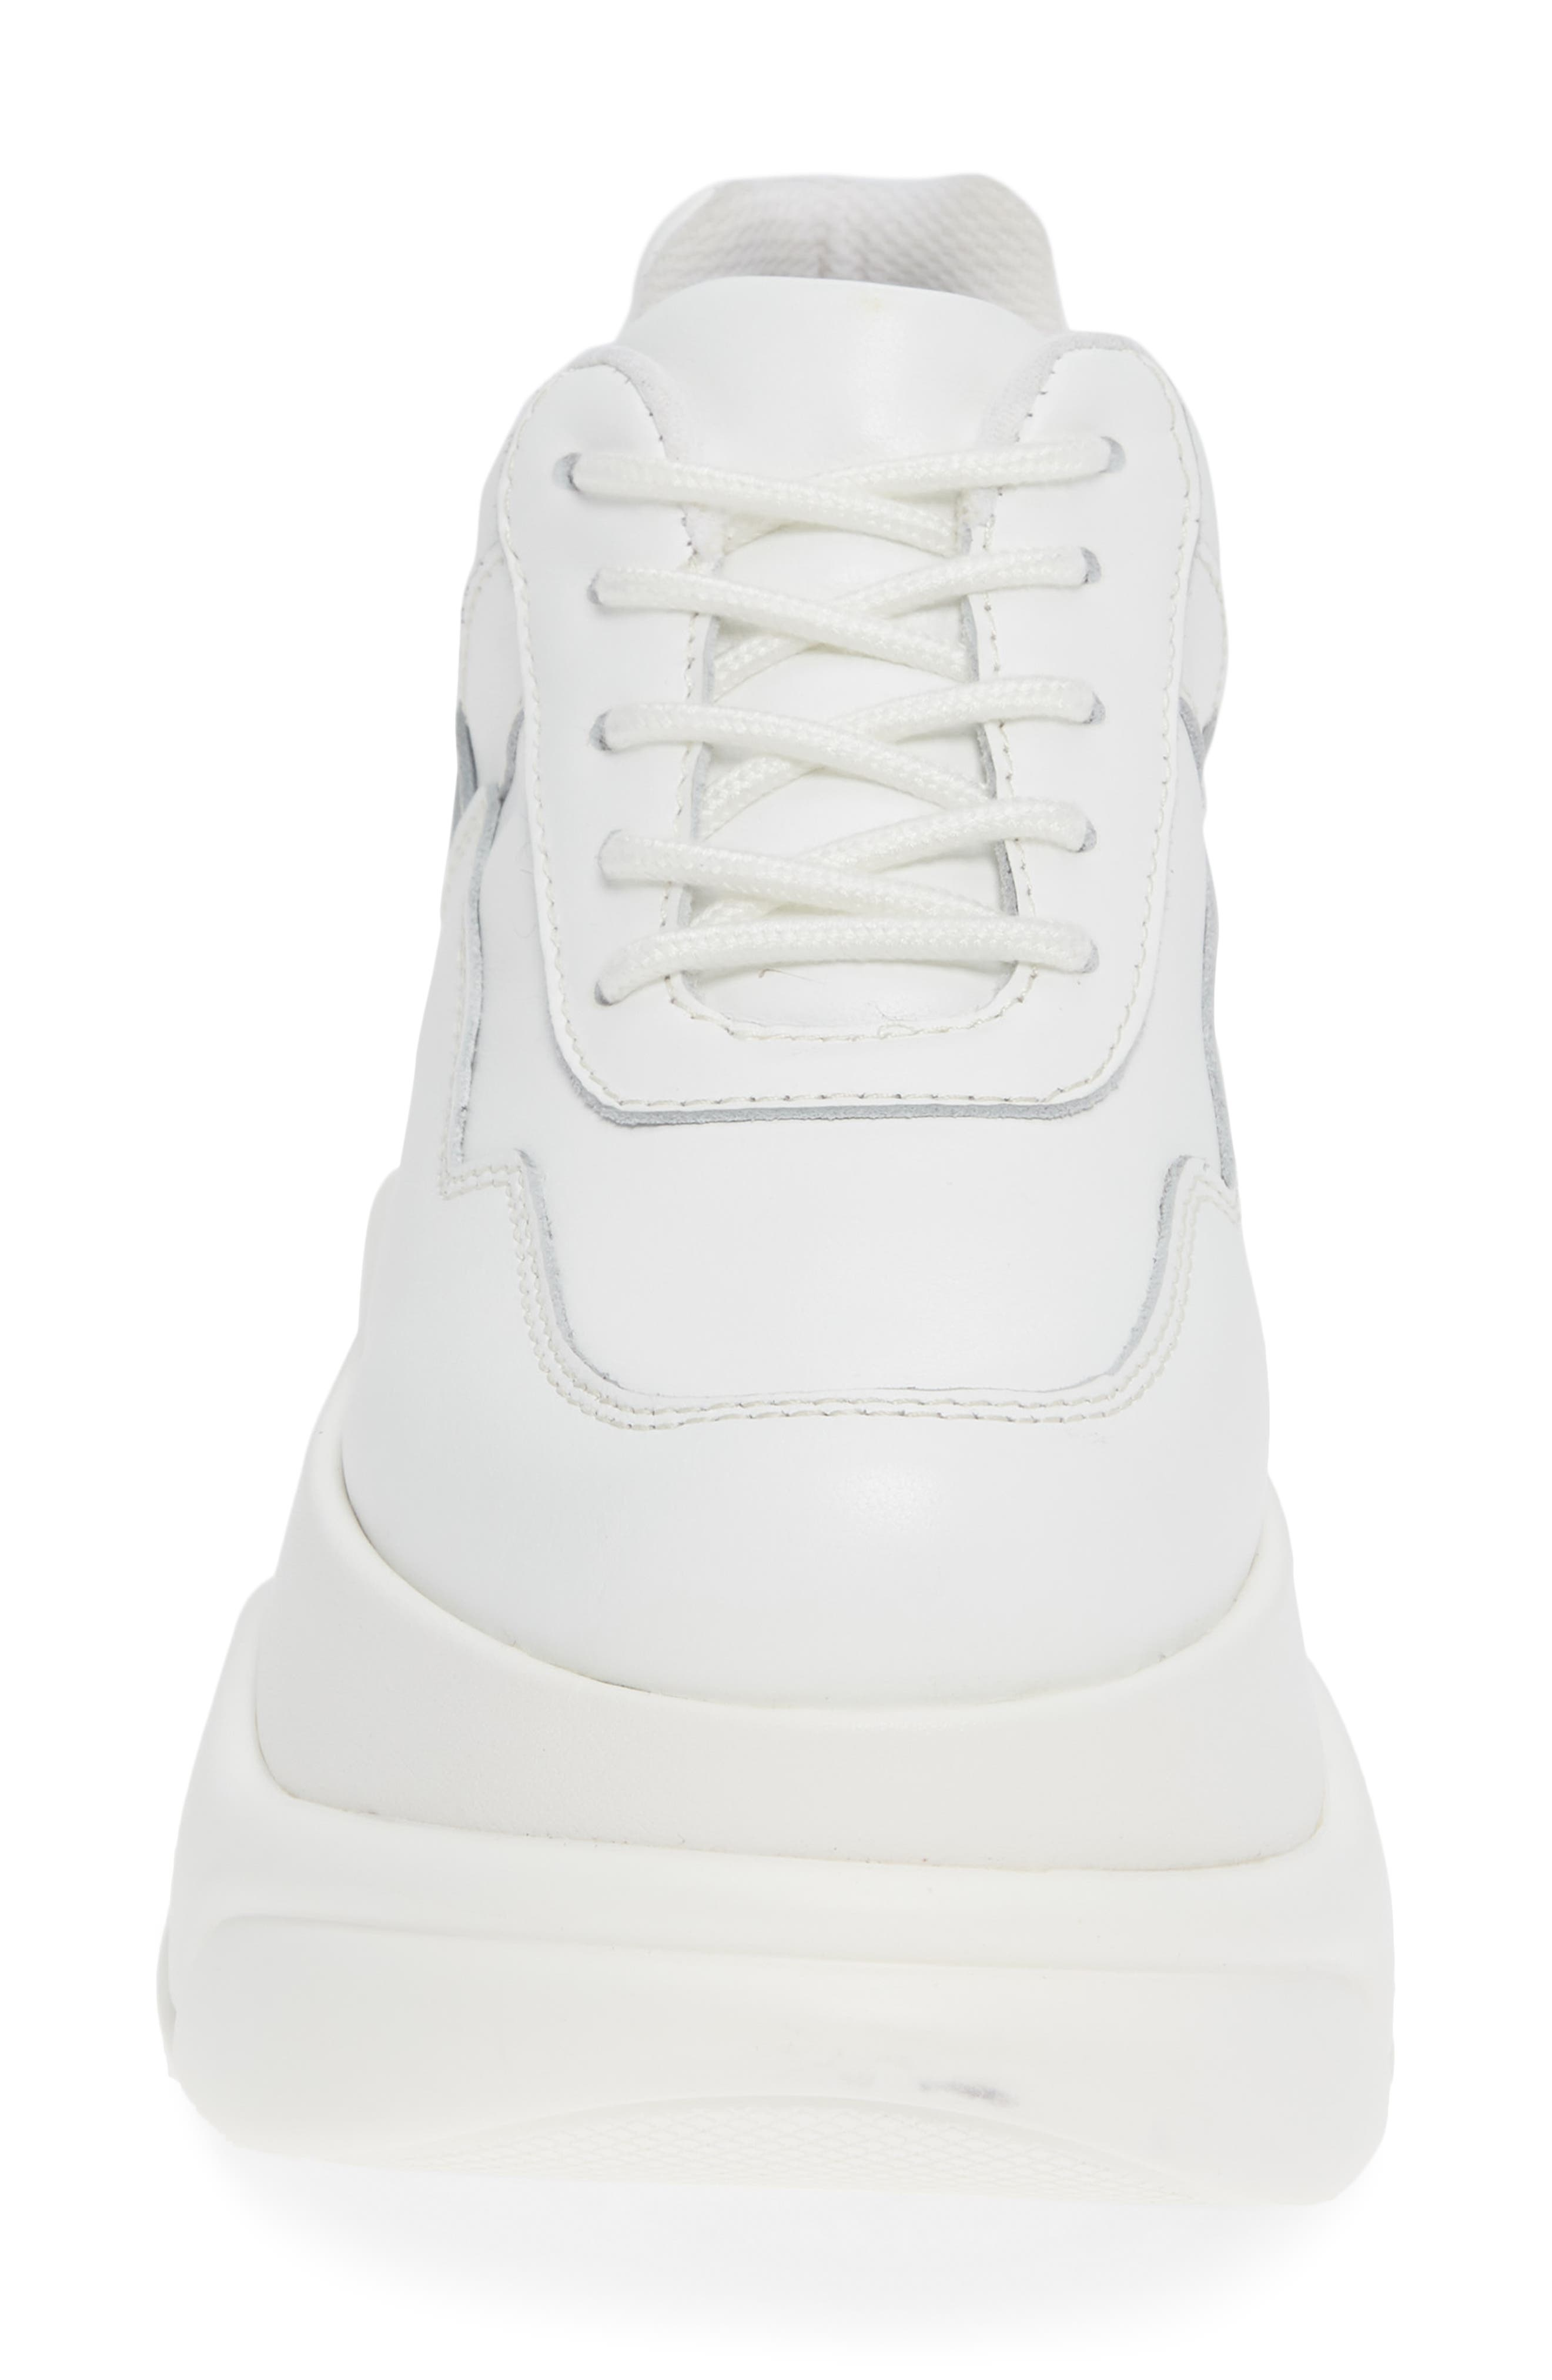 Most Def Wedge Sneaker,                             Alternate thumbnail 4, color,                             WHITE/ WHITE LEATHER